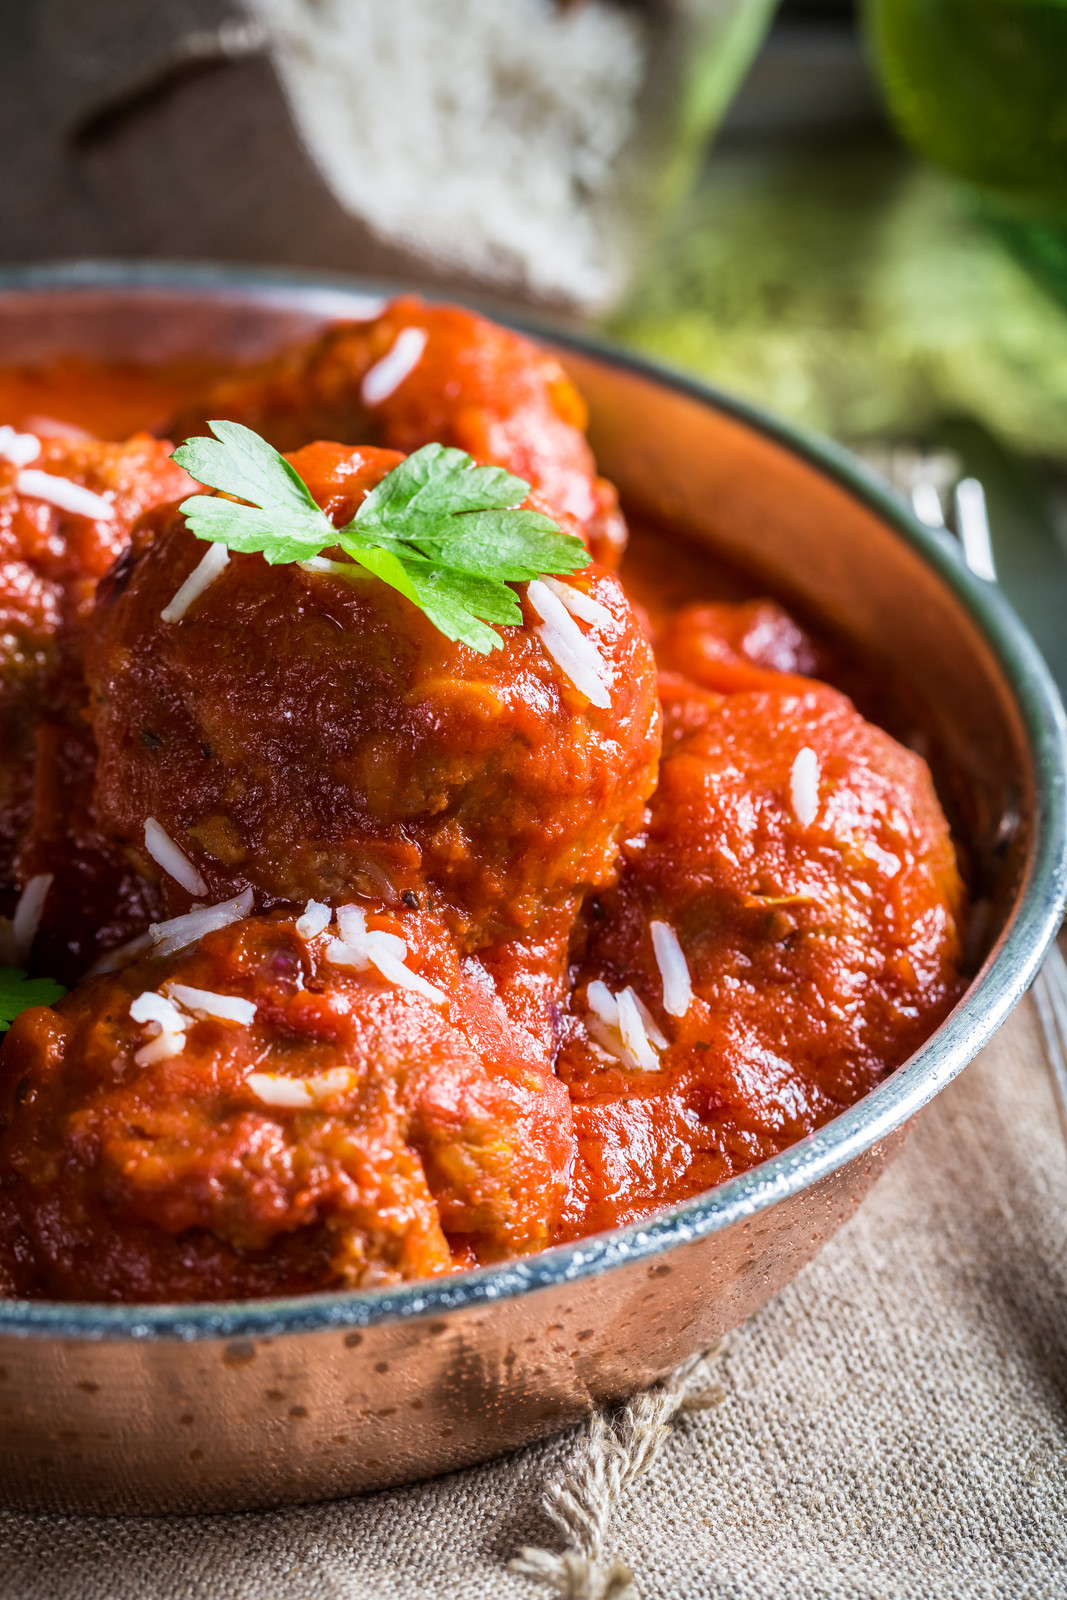 Juicy Meatballs in Sauce and more Italian Food Recipes #misshomemade | Thousands of recipes at MissHomemade.com